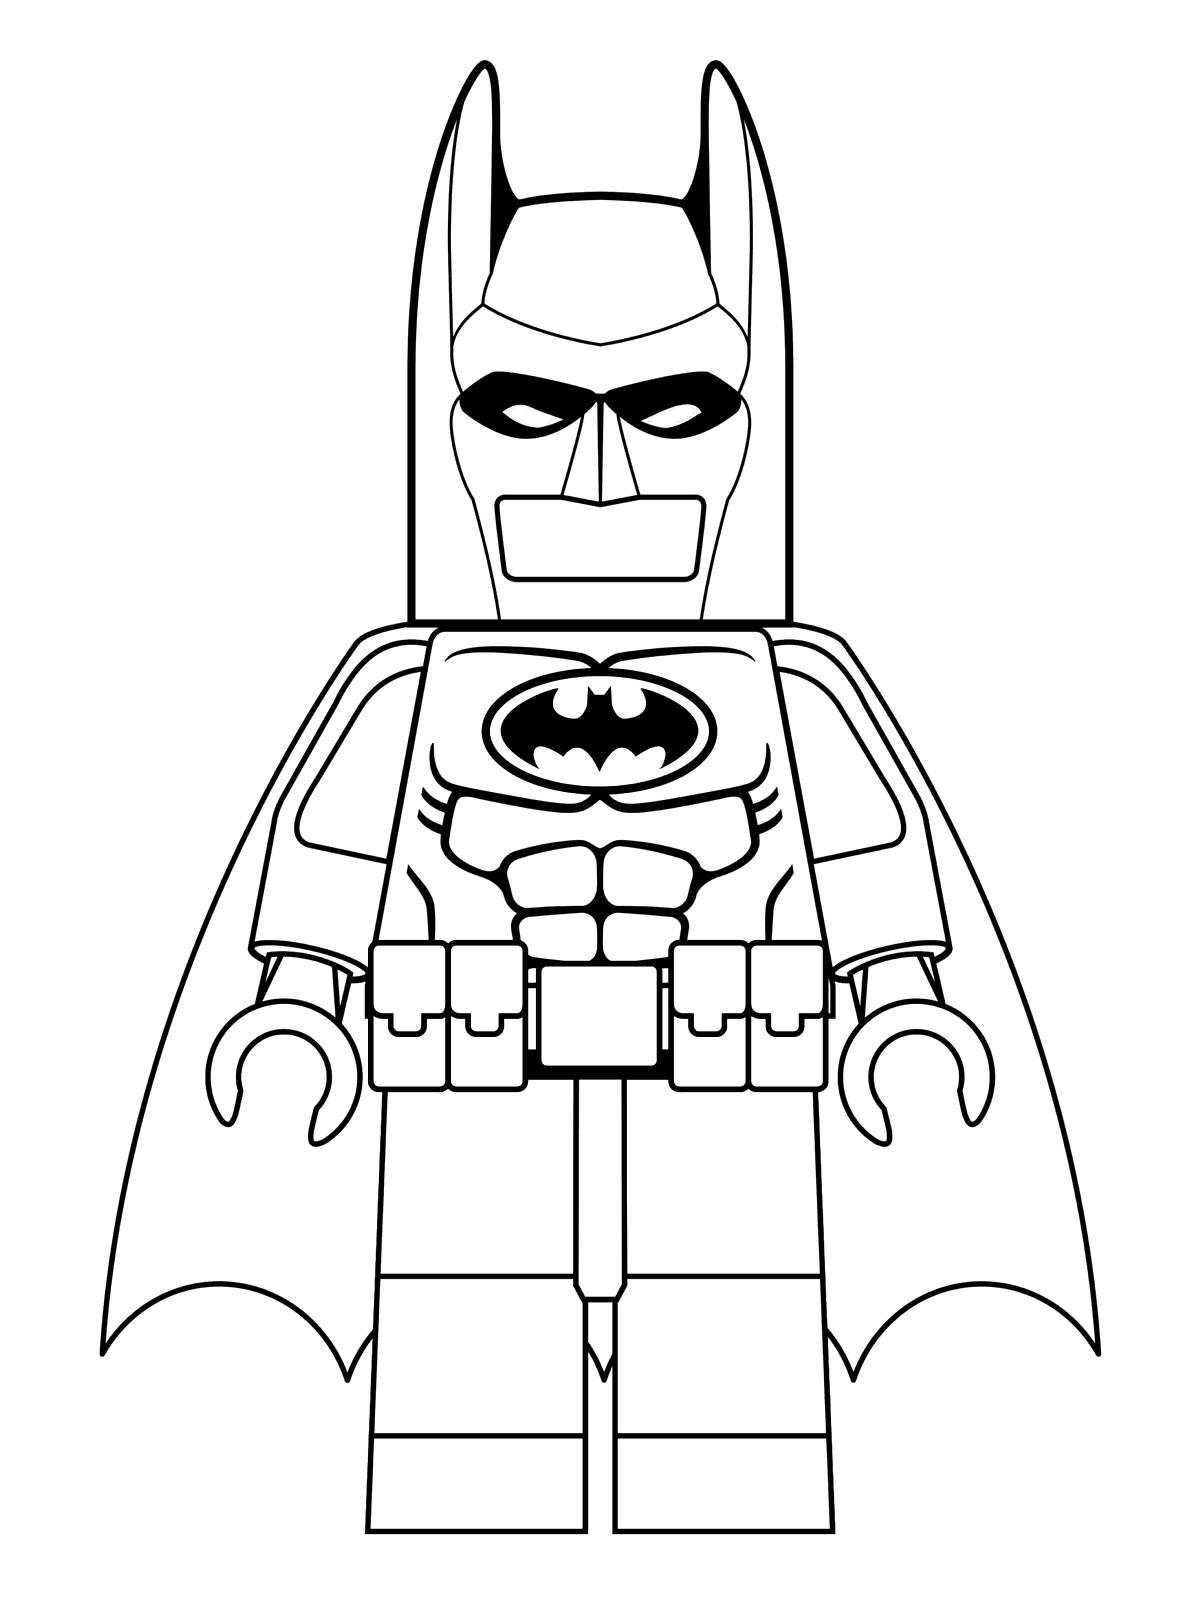 I am Lego Batman - Coloring Pages  Lego movie coloring pages